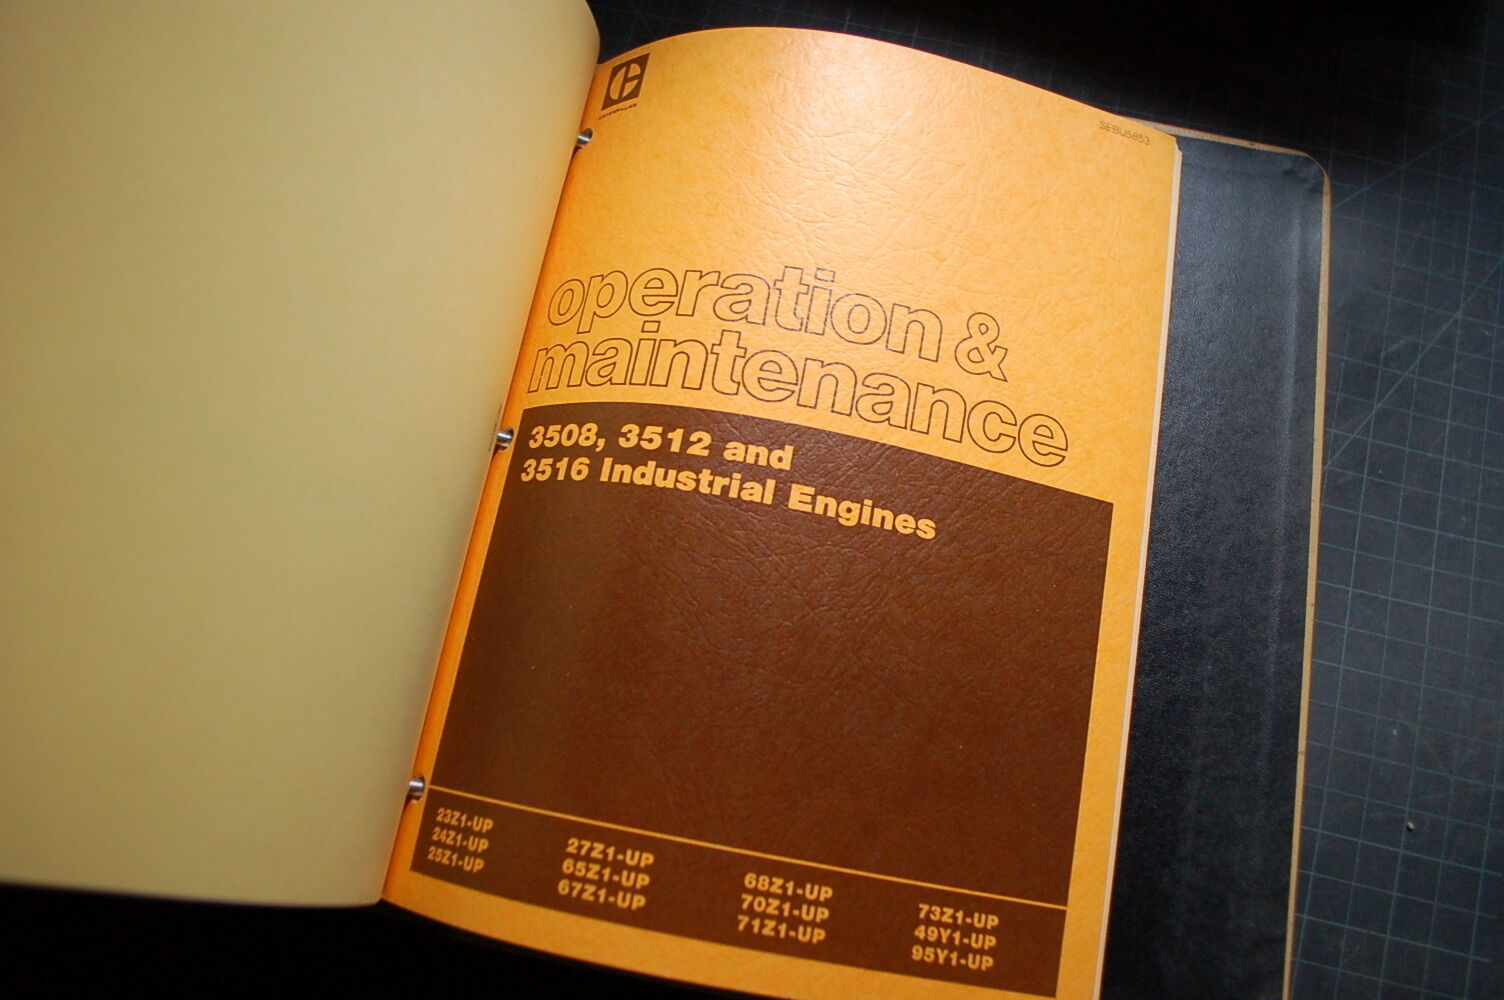 6 of 7 CAT Caterpillar 3508 3512 Industrial Engine Repair Service Manual  shop diesel